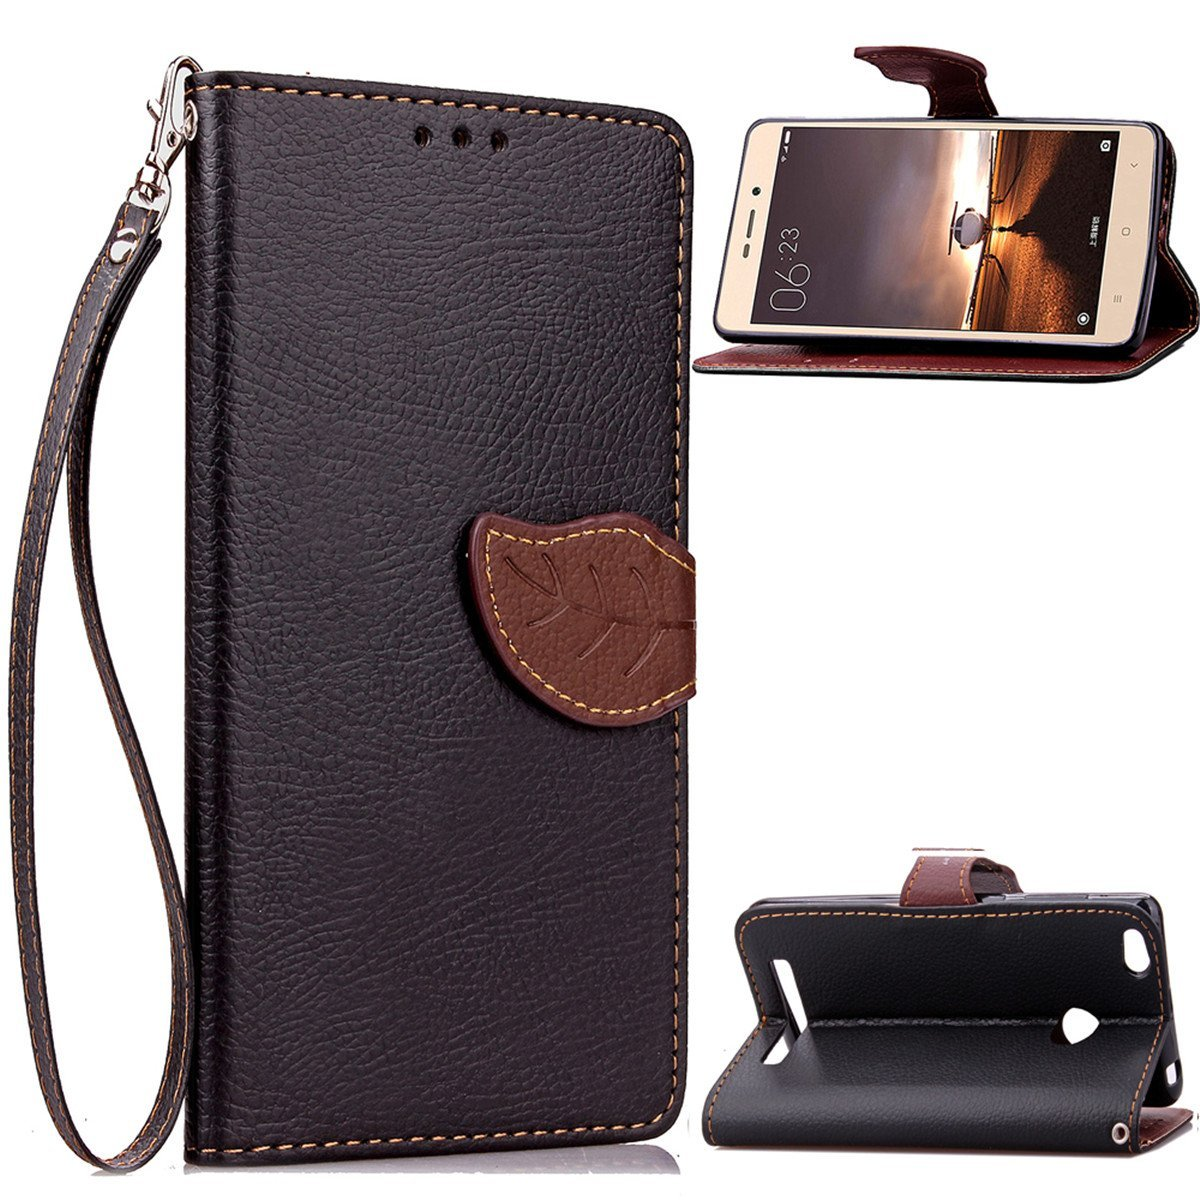 Xiaomi Redmi 3s Case,Gift_Source [Kickstand] [Leaf Style] Magnetic Snap Case Premium Wallet Case Built-in Card Slots Folio Flip Case Cover With Wrist Strap for Xiaomi Redmi 3S [Black]